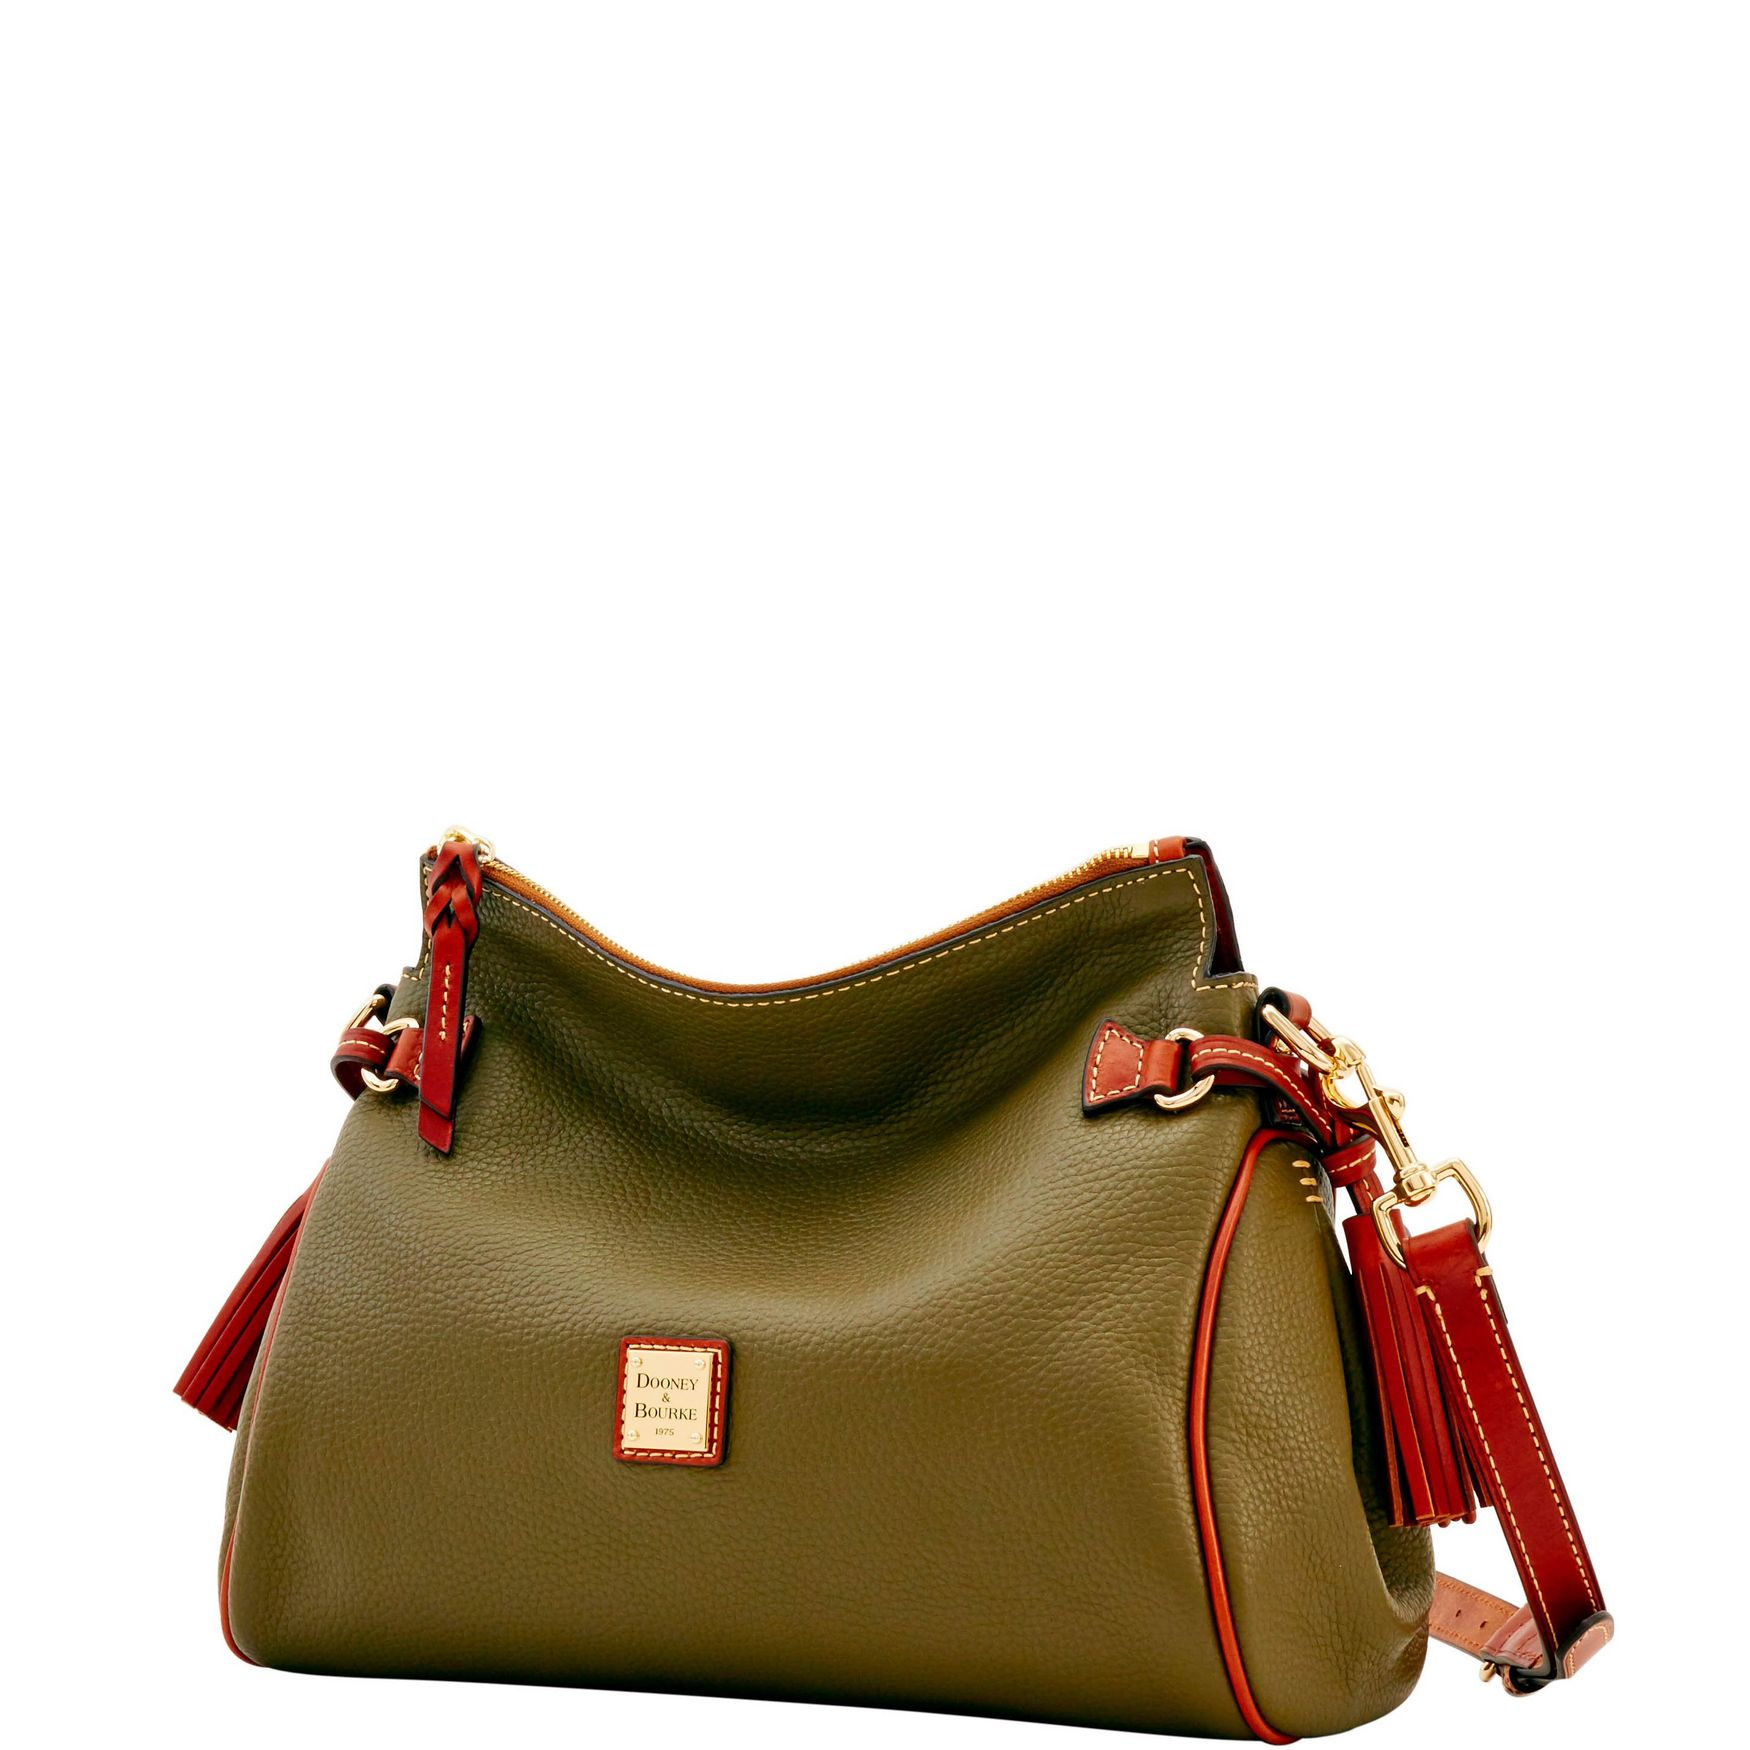 Dooney-amp-Bourke-Pebble-Grain-Medium-Zip-Crossbody-Shoulder-Bag thumbnail 28